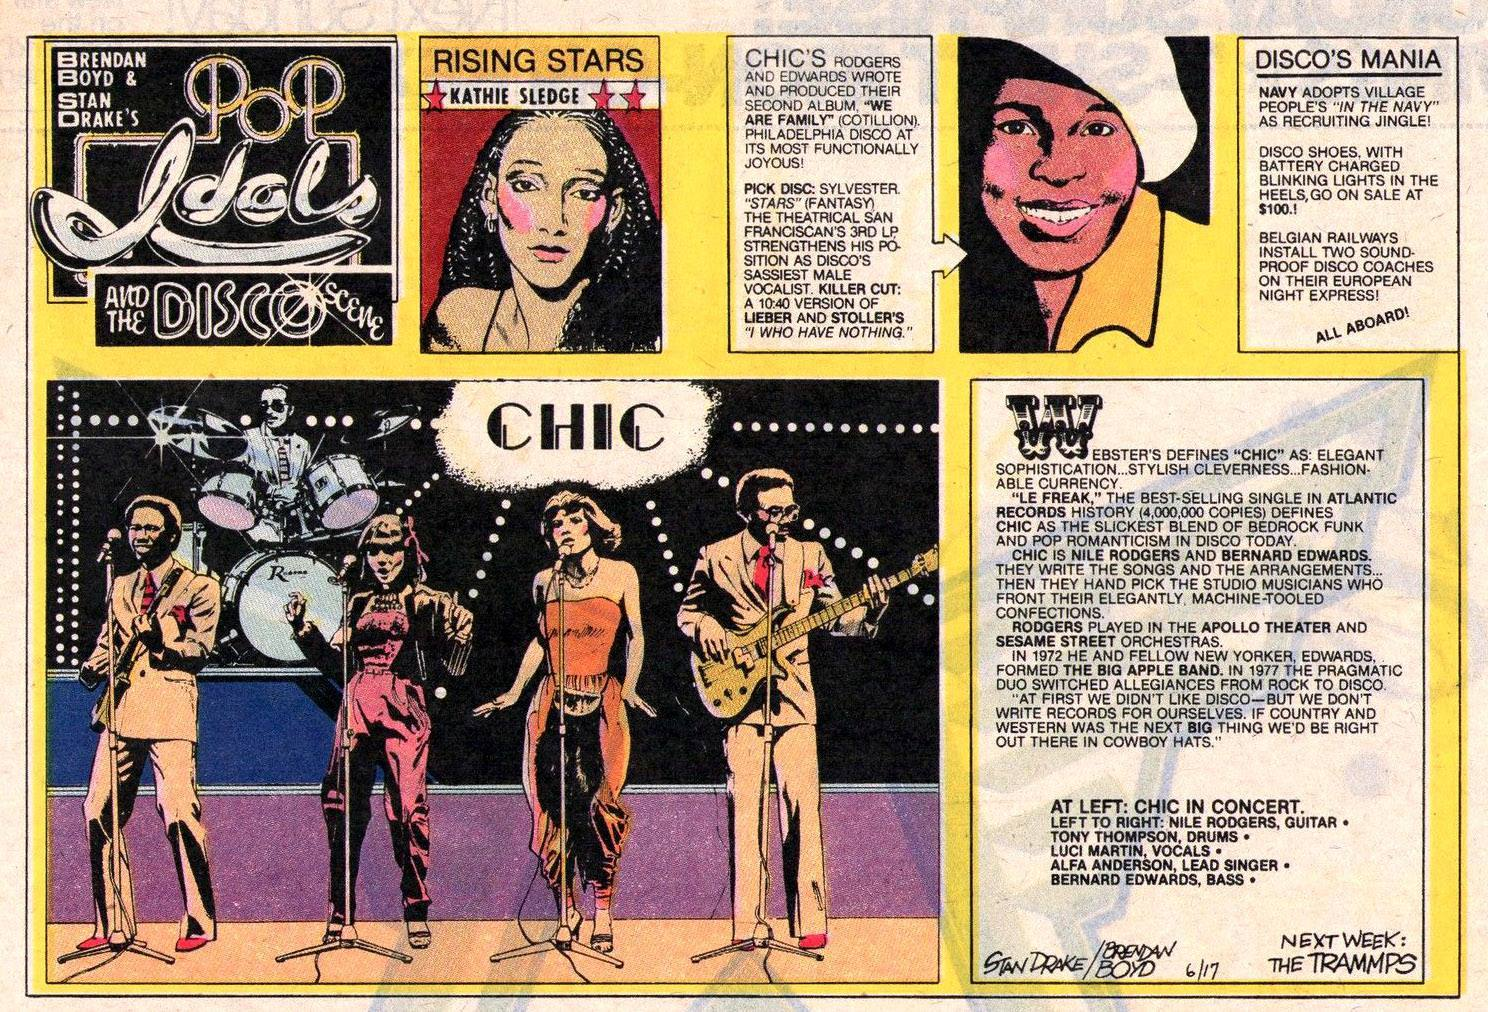 POP IDOLS AND THE DISCO SCENE Newspaper Strip Sunday June 17 1979